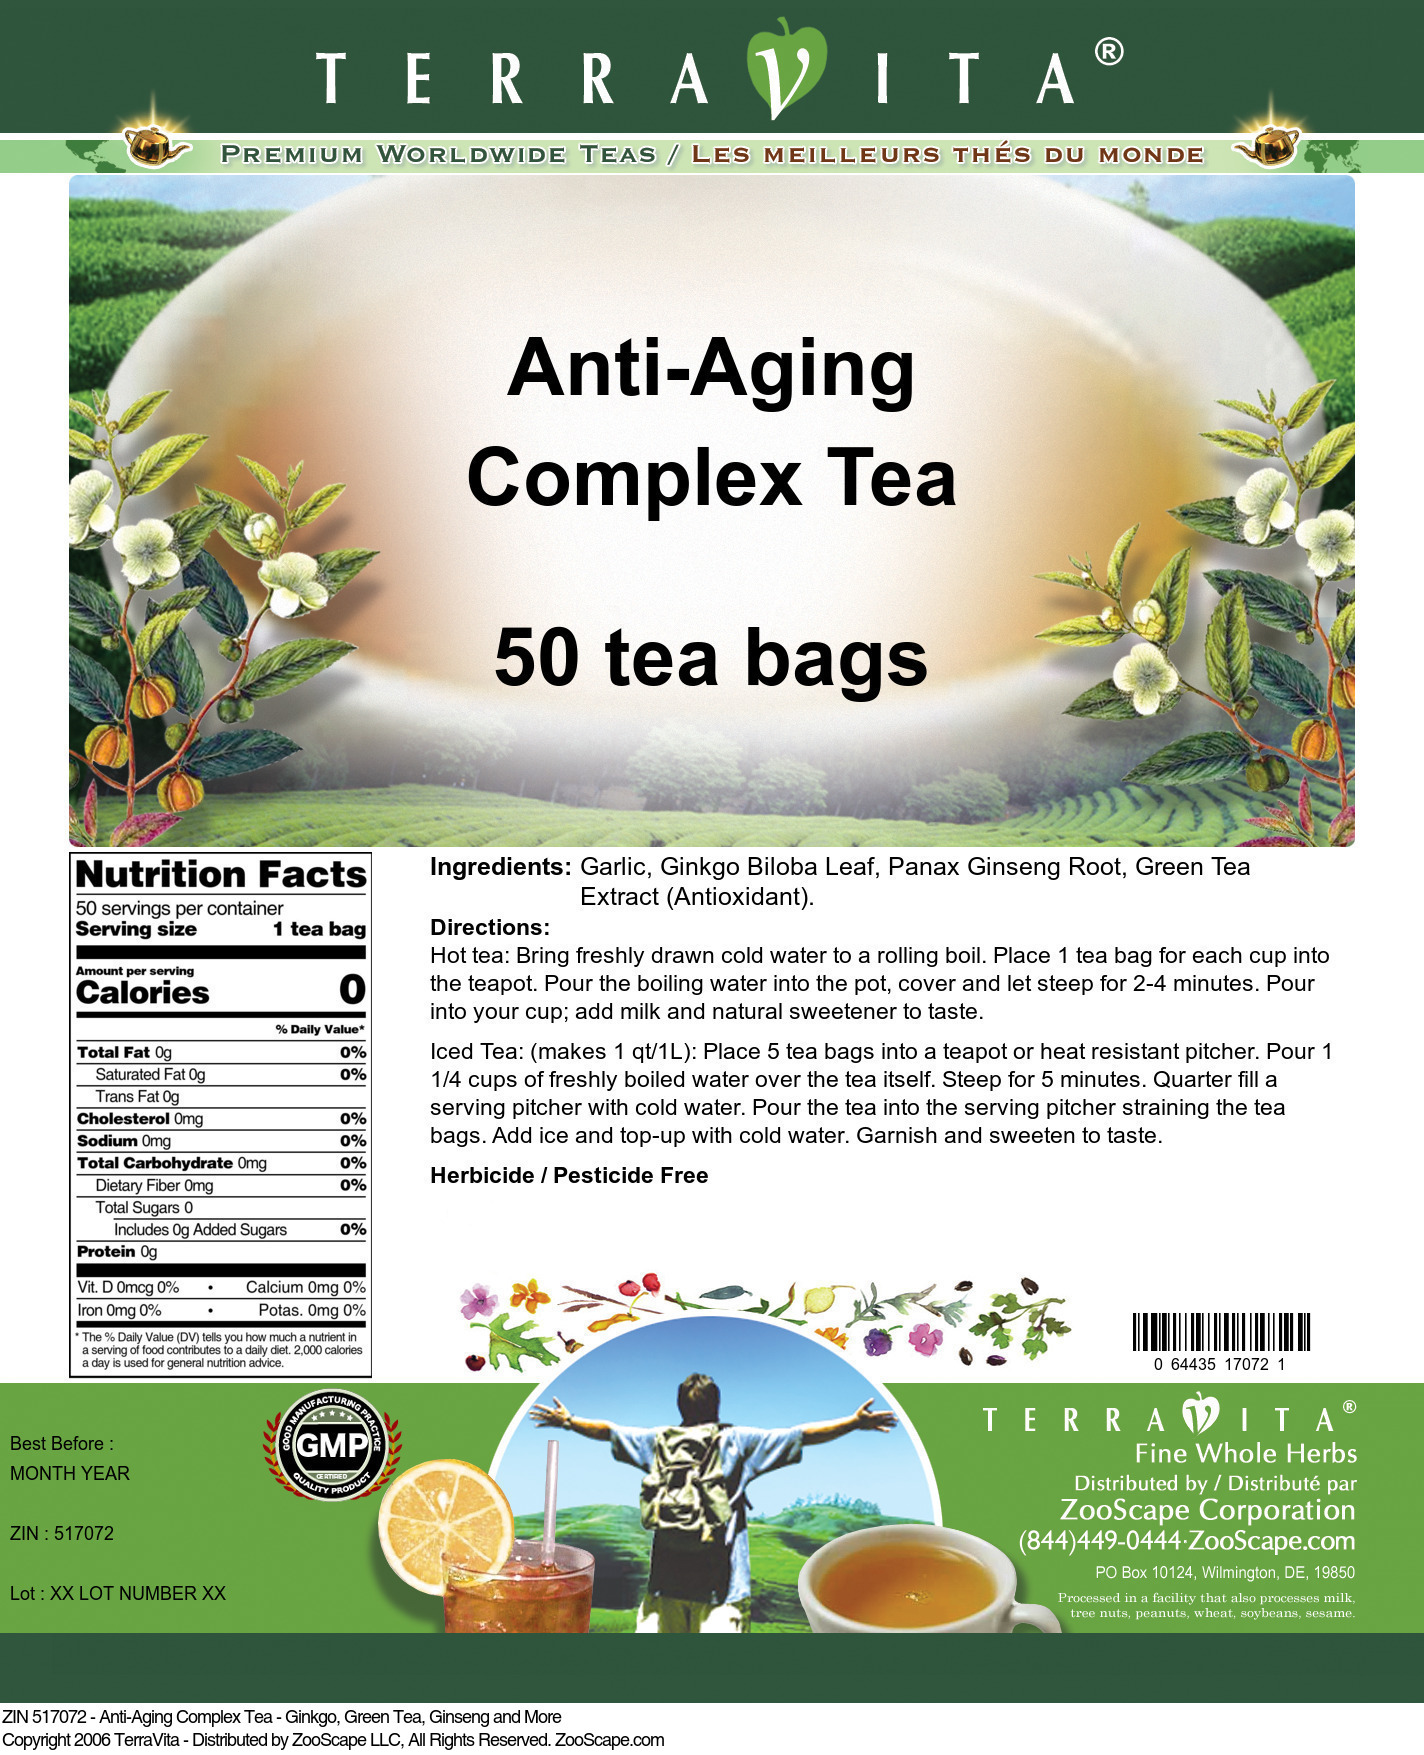 Anti-Aging Complex Tea - Ginkgo, Green Tea, Ginseng and More